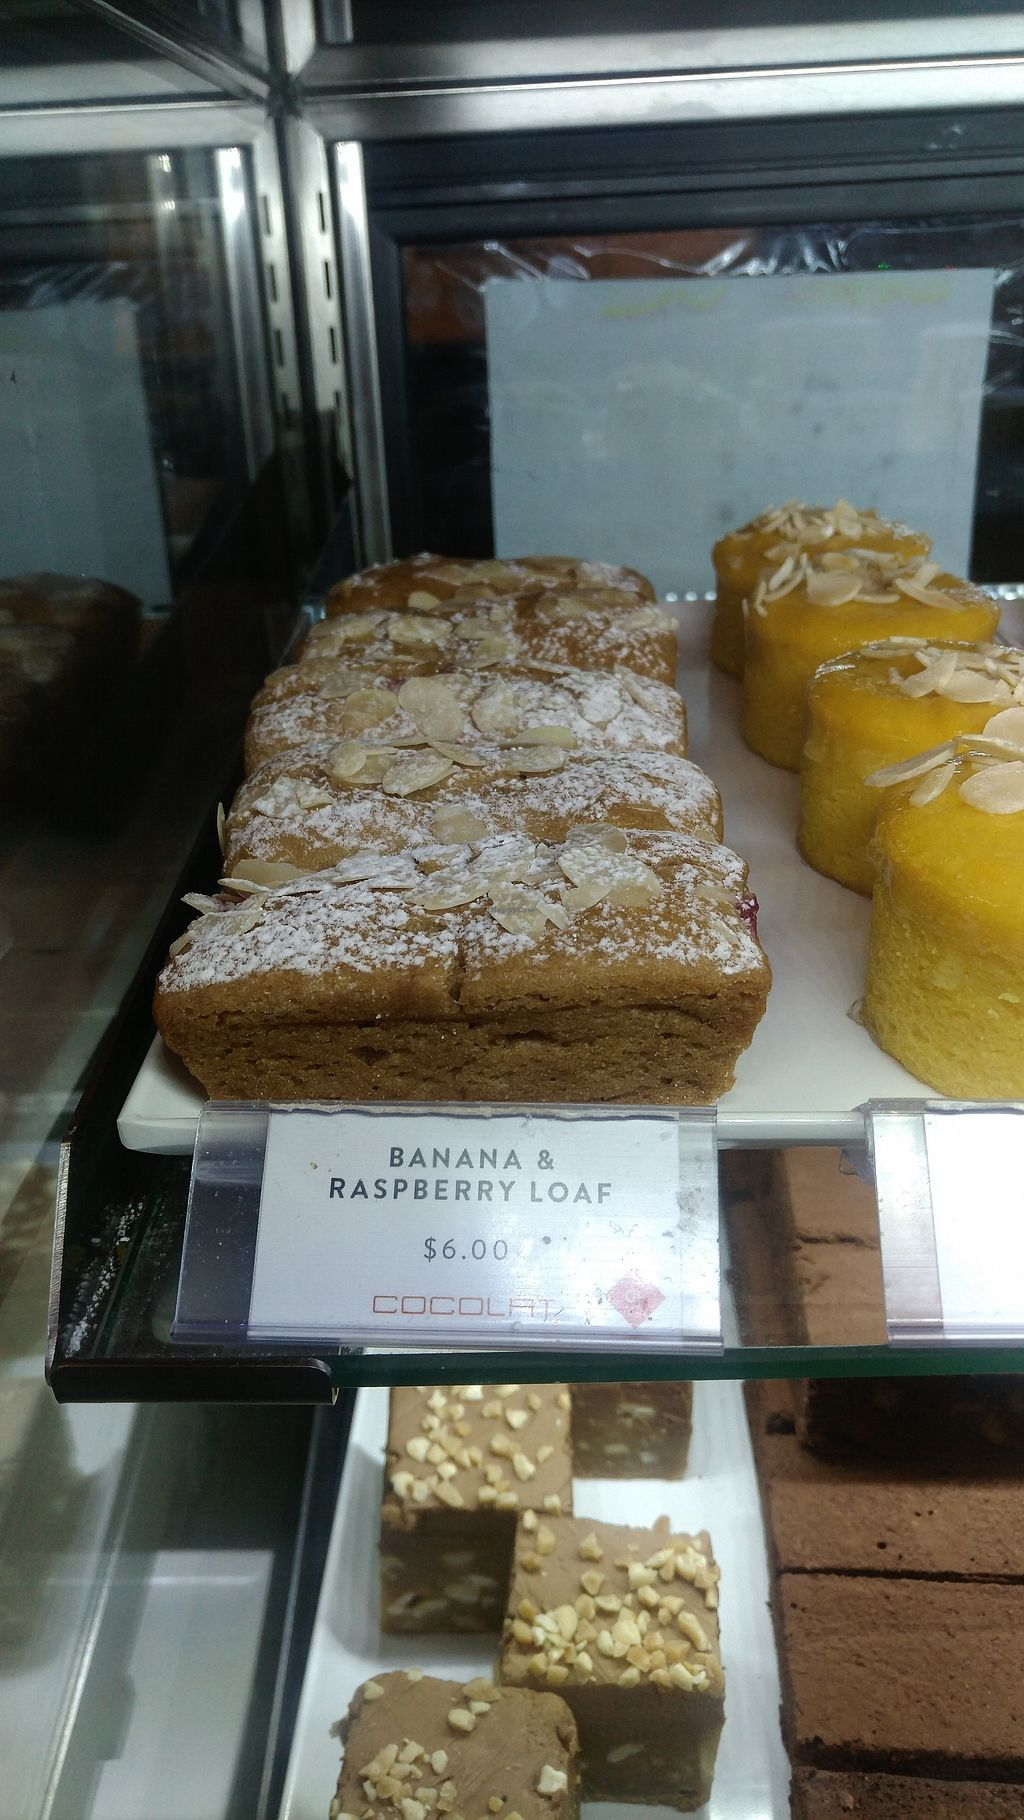 """Photo of Cocolat - Adelaide Airport  by <a href=""""/members/profile/lasm"""">lasm</a> <br/>Vegan soft cake <br/> February 8, 2018  - <a href='/contact/abuse/image/111480/356211'>Report</a>"""